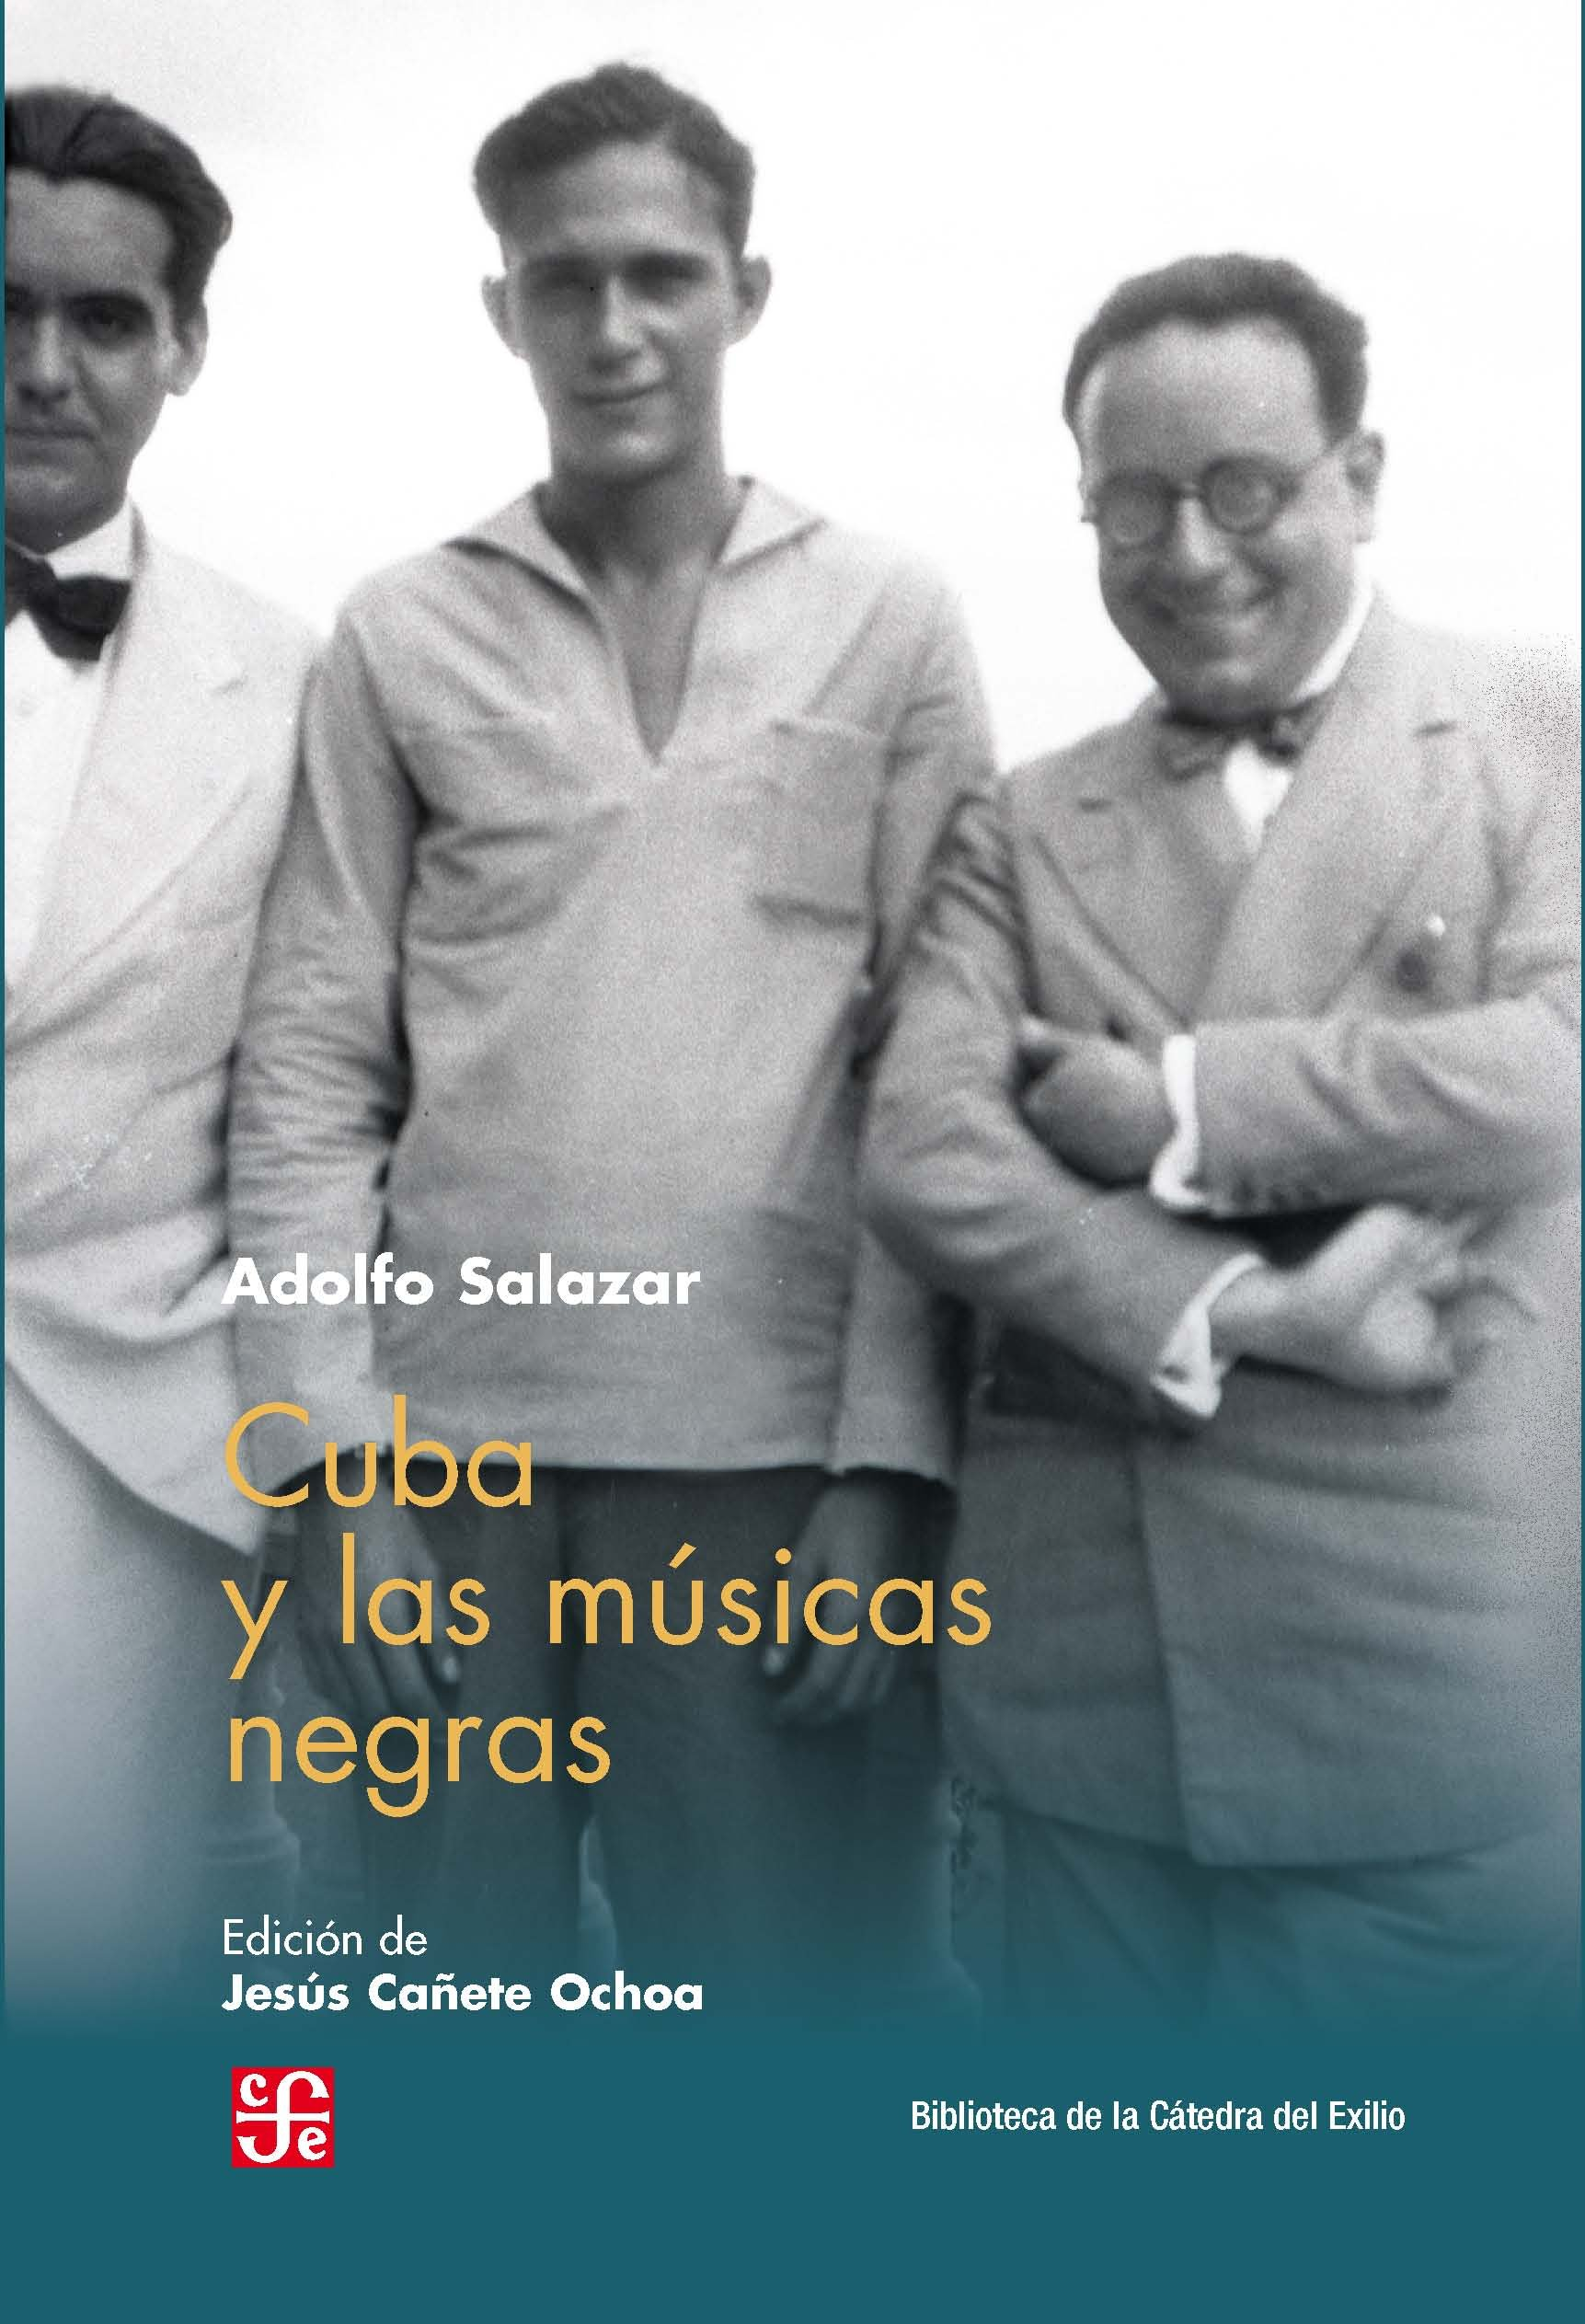 Cover of Adolfo Salazar's book 'Cuba and the Black Music', in whose photo Federico García Lorca appears on the left,  and, on the right, Salazar himself.